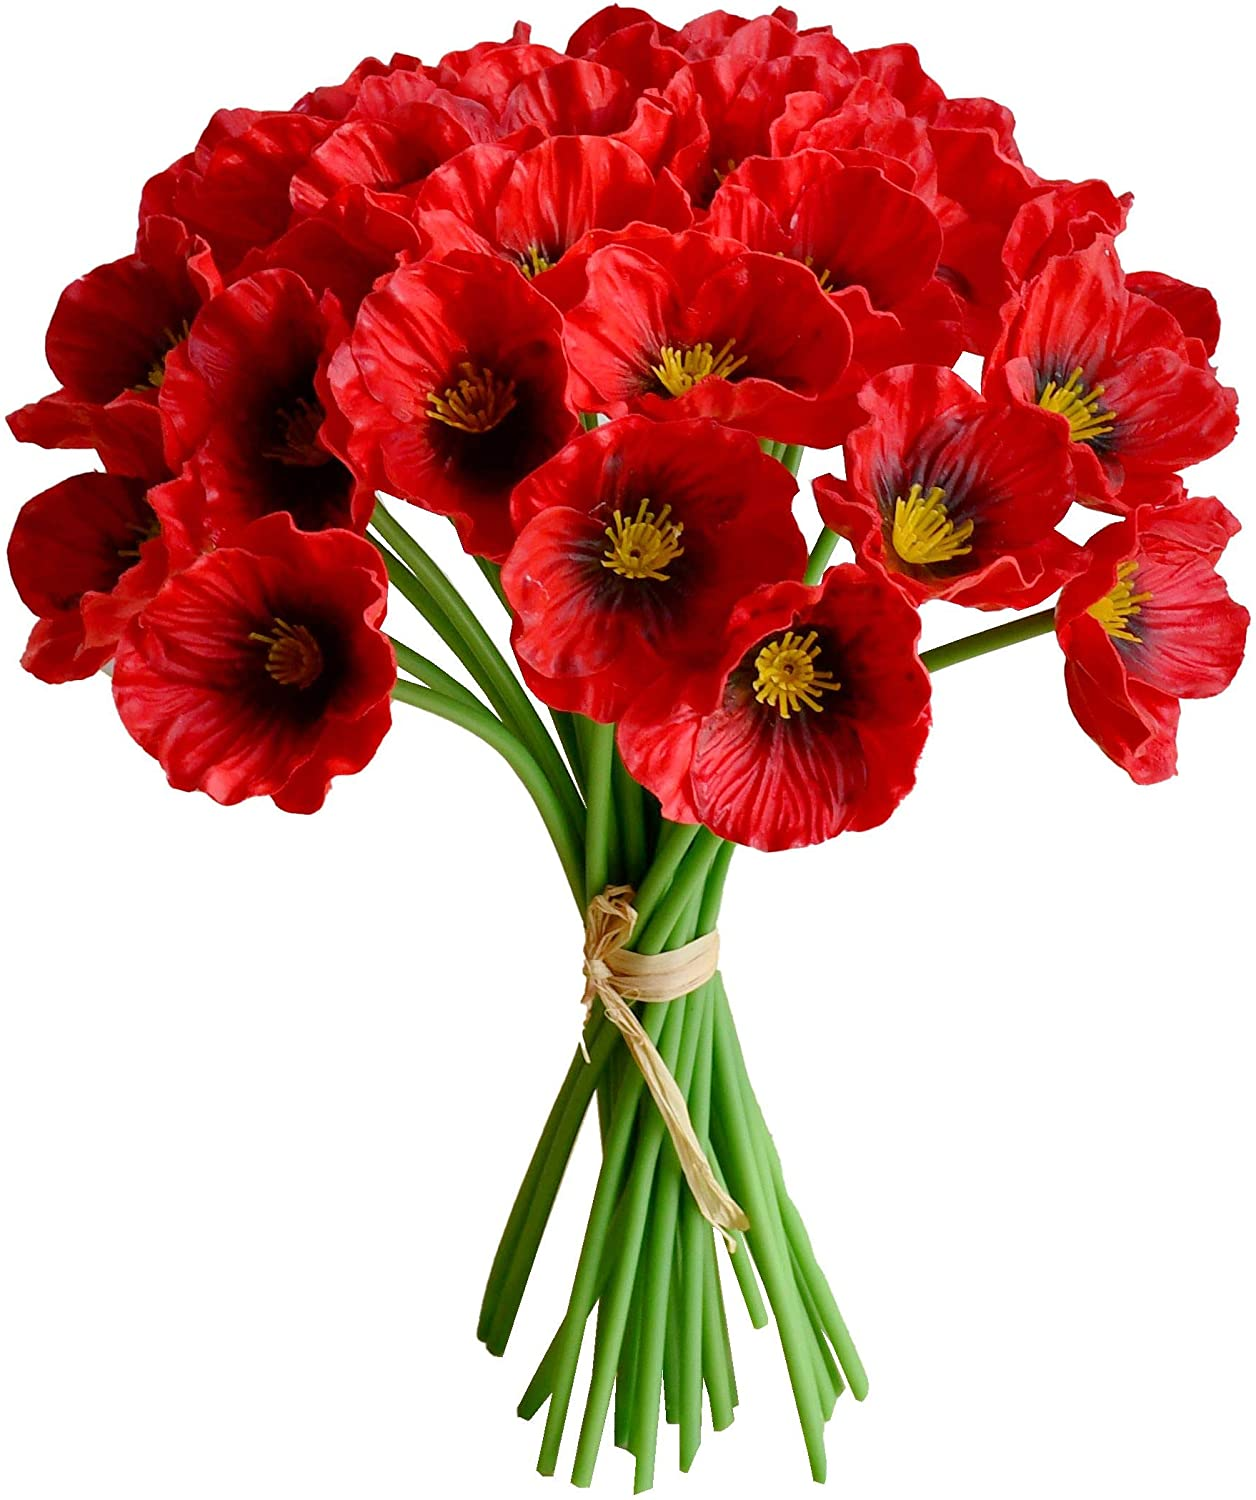 Mandy's 30pcs Red Poppies Artificial Flowers for Wedding Home & Kitchen PU 12.5